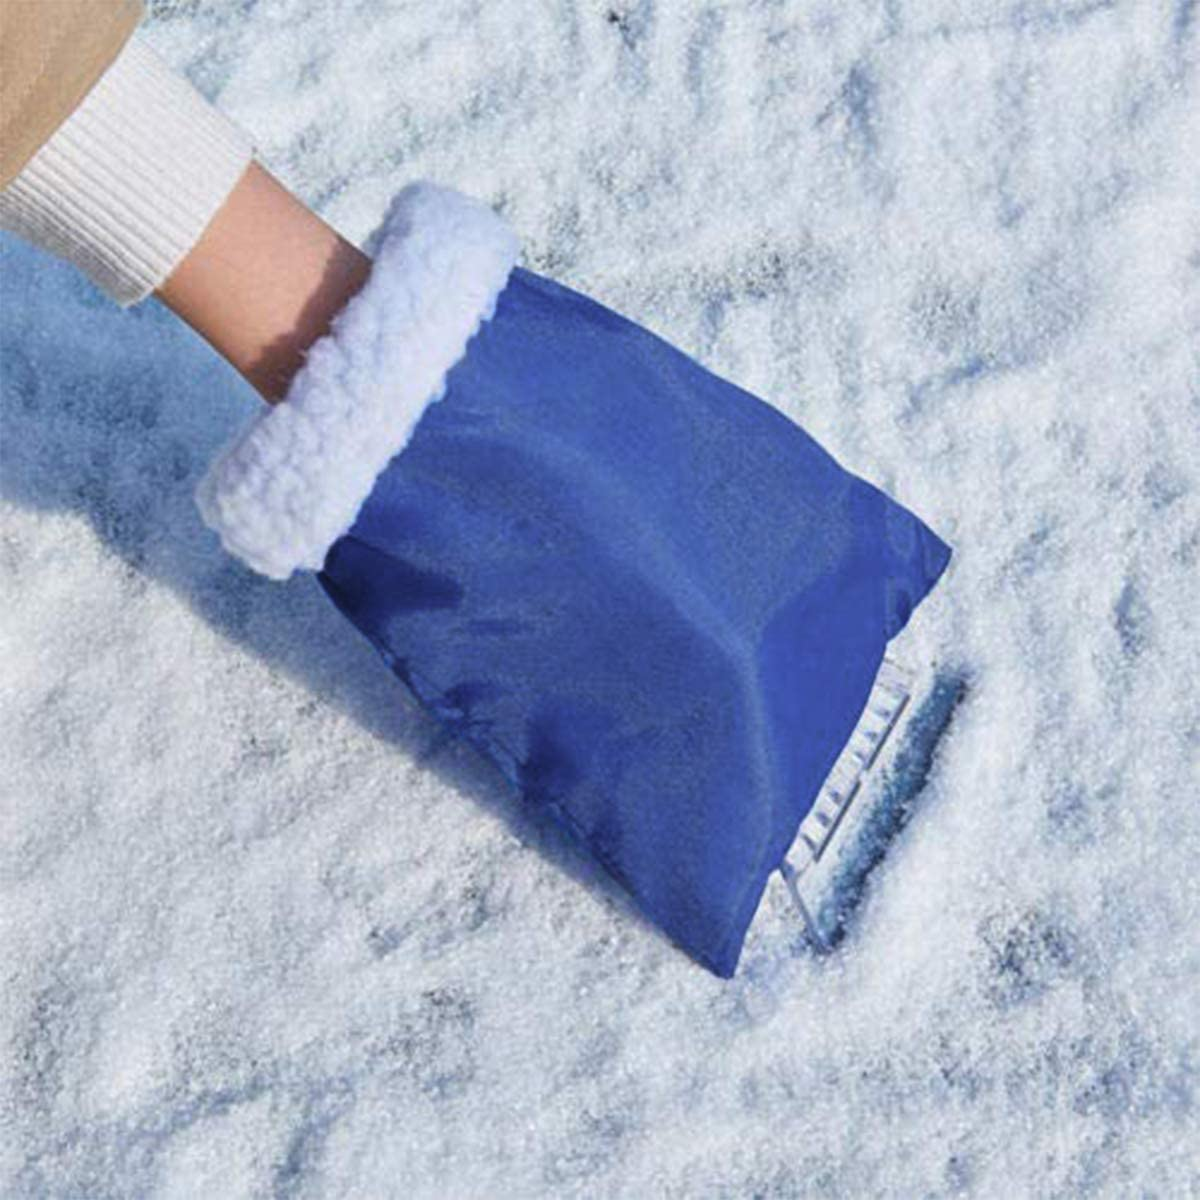 Snow Shovel Antifreeze Glove Cleaning Tool for Truck SUV Windshield and Window TYPHEERX Ice Scraper Mitten